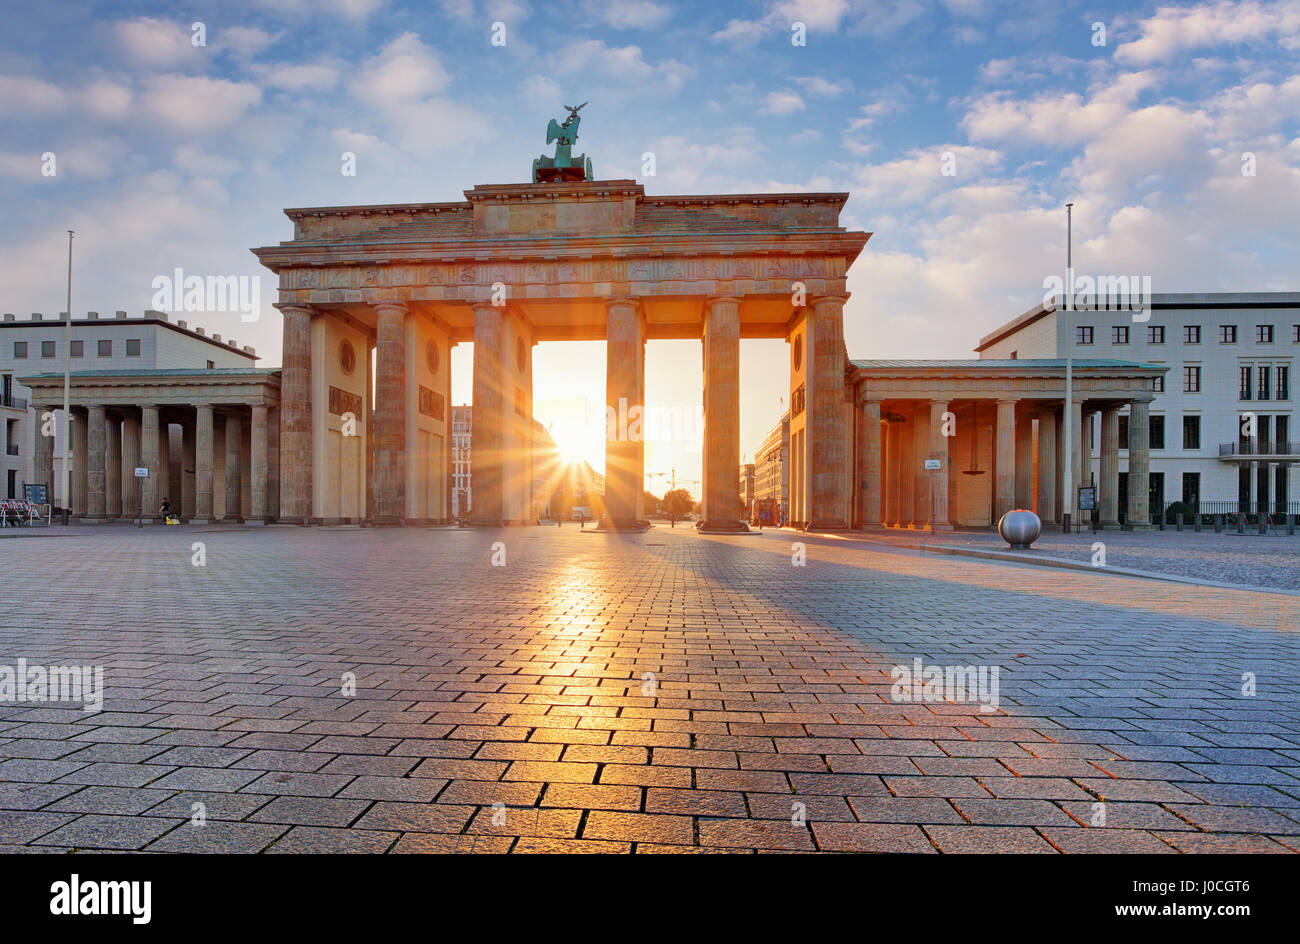 Berlin - Brandenburg Gate at sunrise, Germany - Stock Image